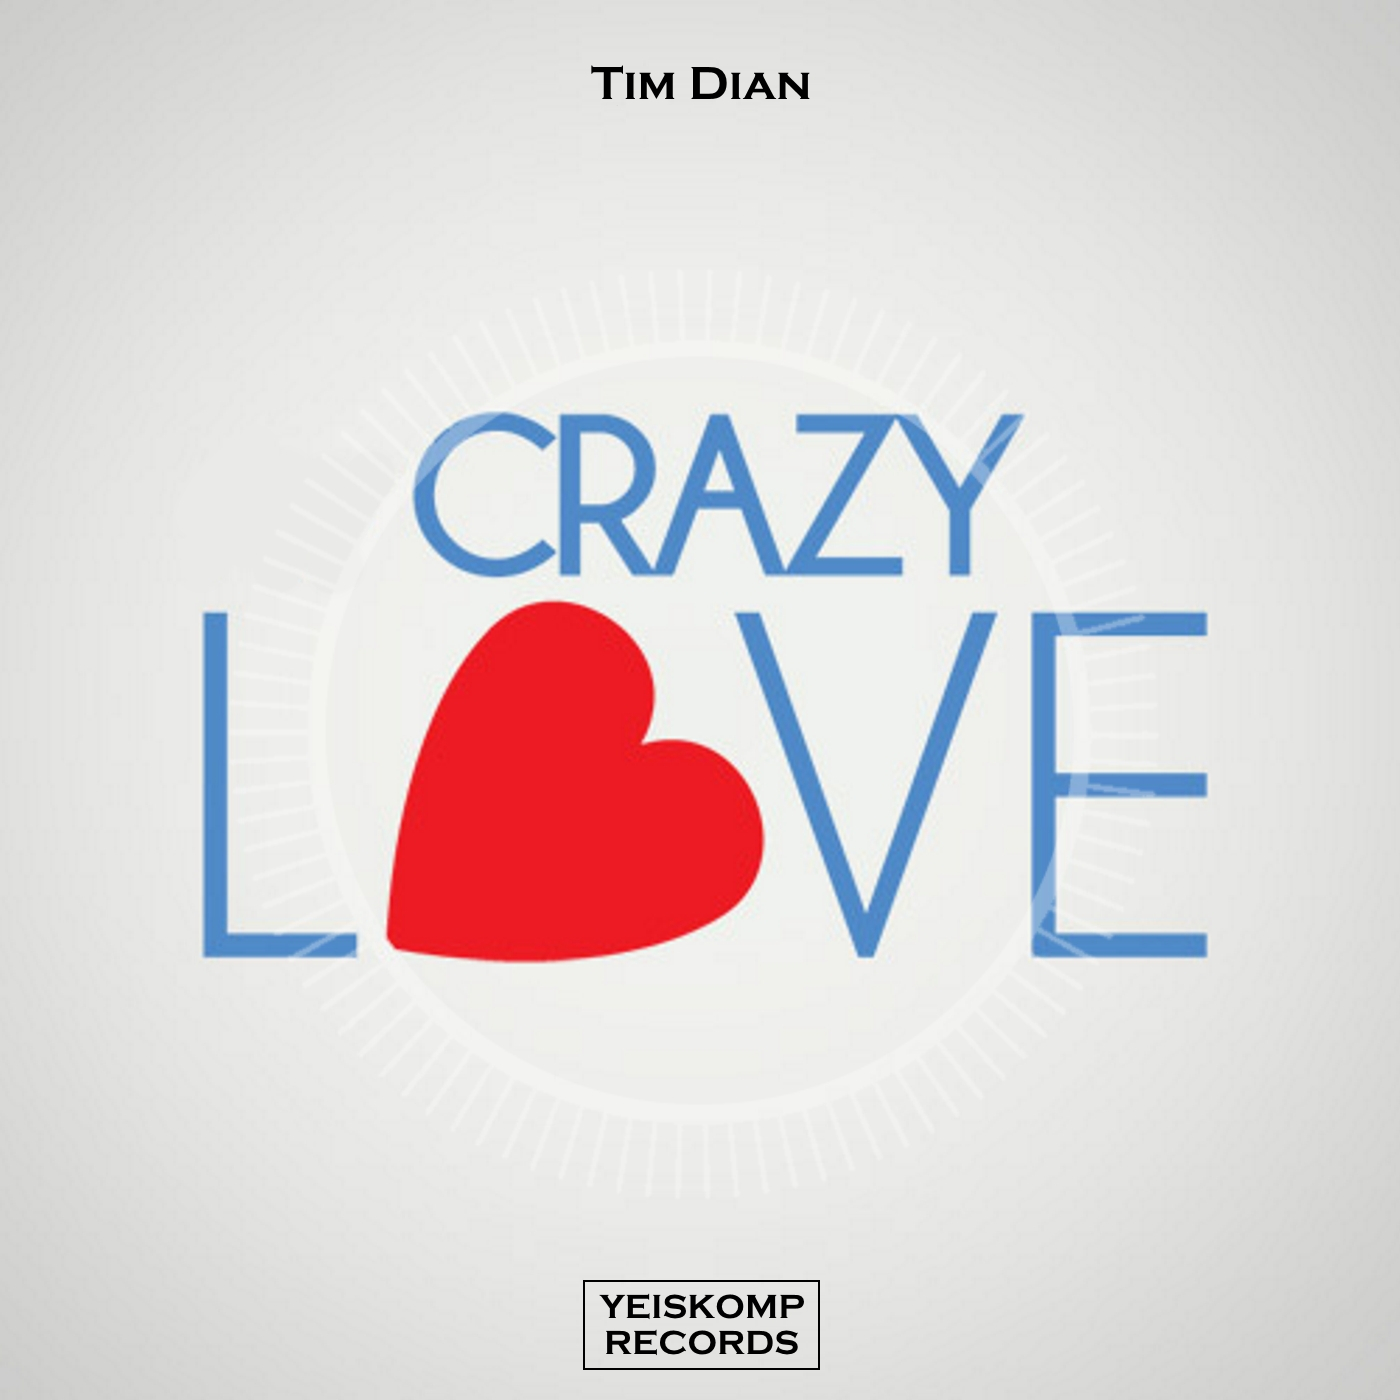 Tim Dian - Crazy Love (Original Mix)